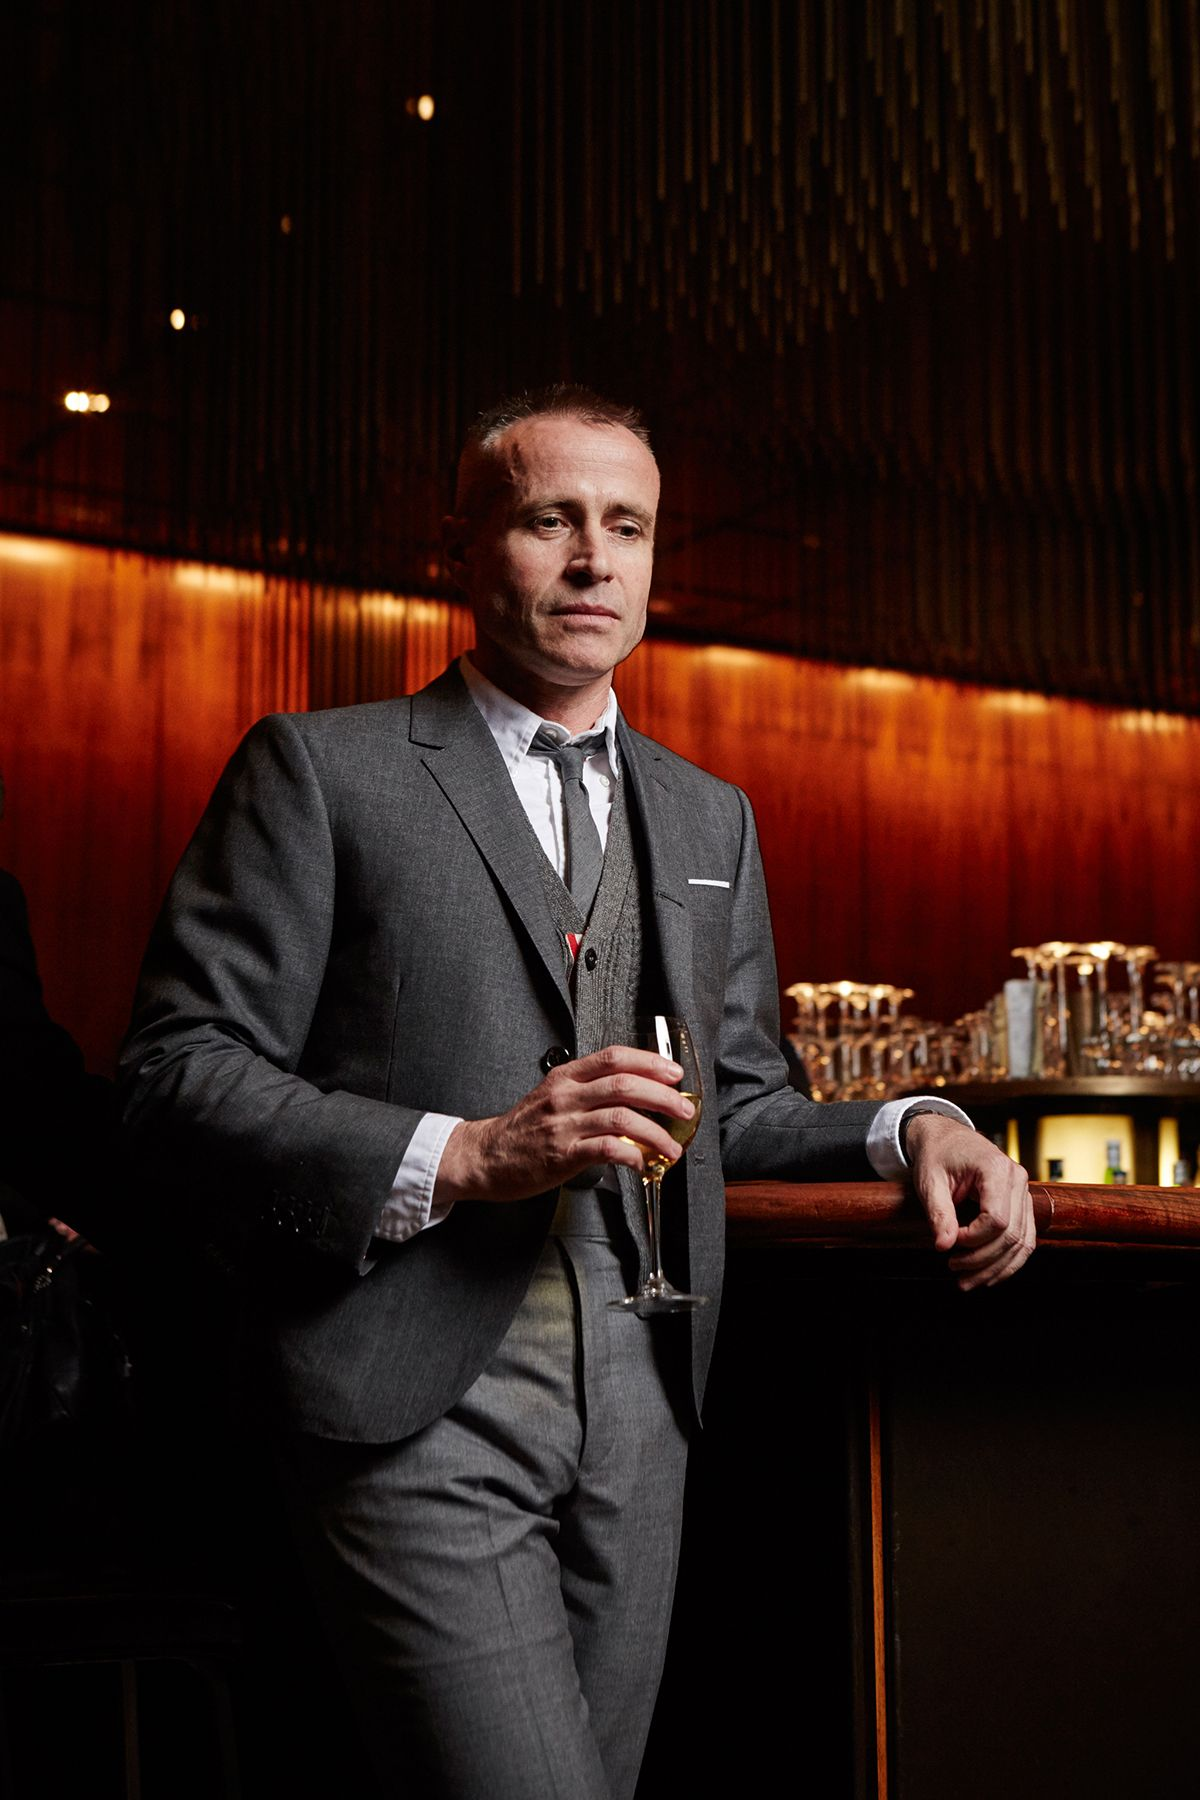 A drink with thom browne